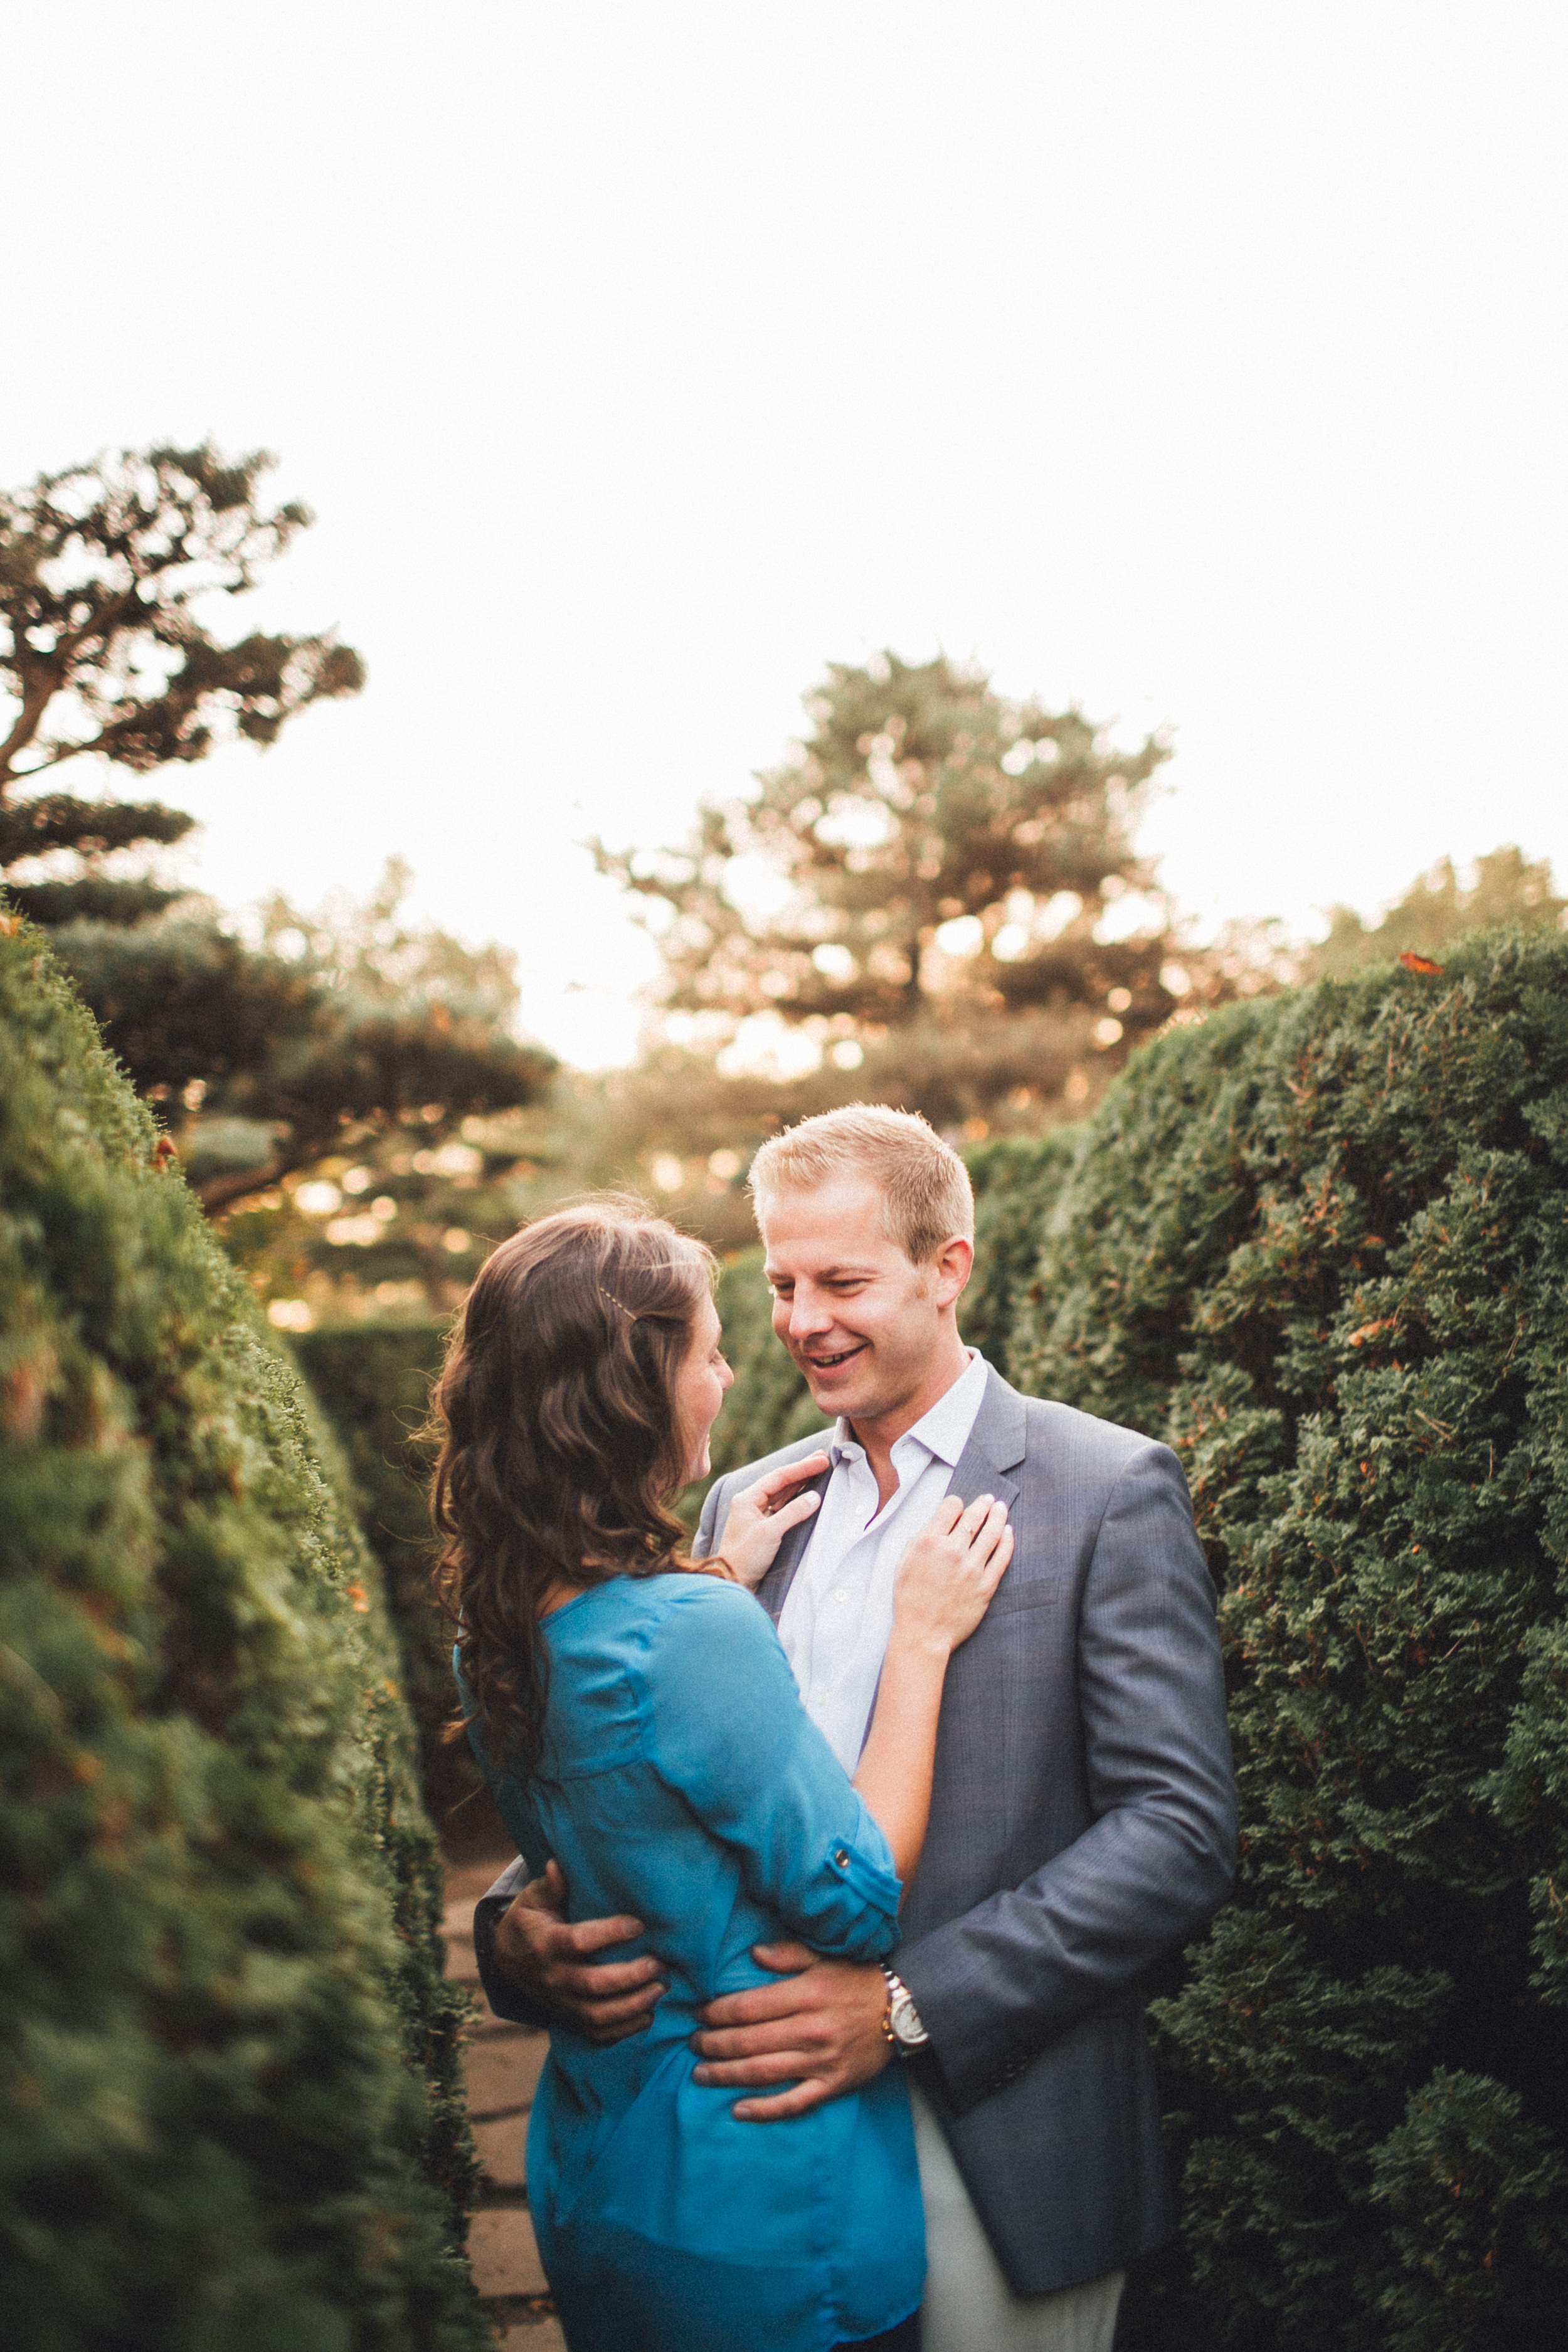 mayden photography_chicago botanical gardens engagement photo-5.jpg